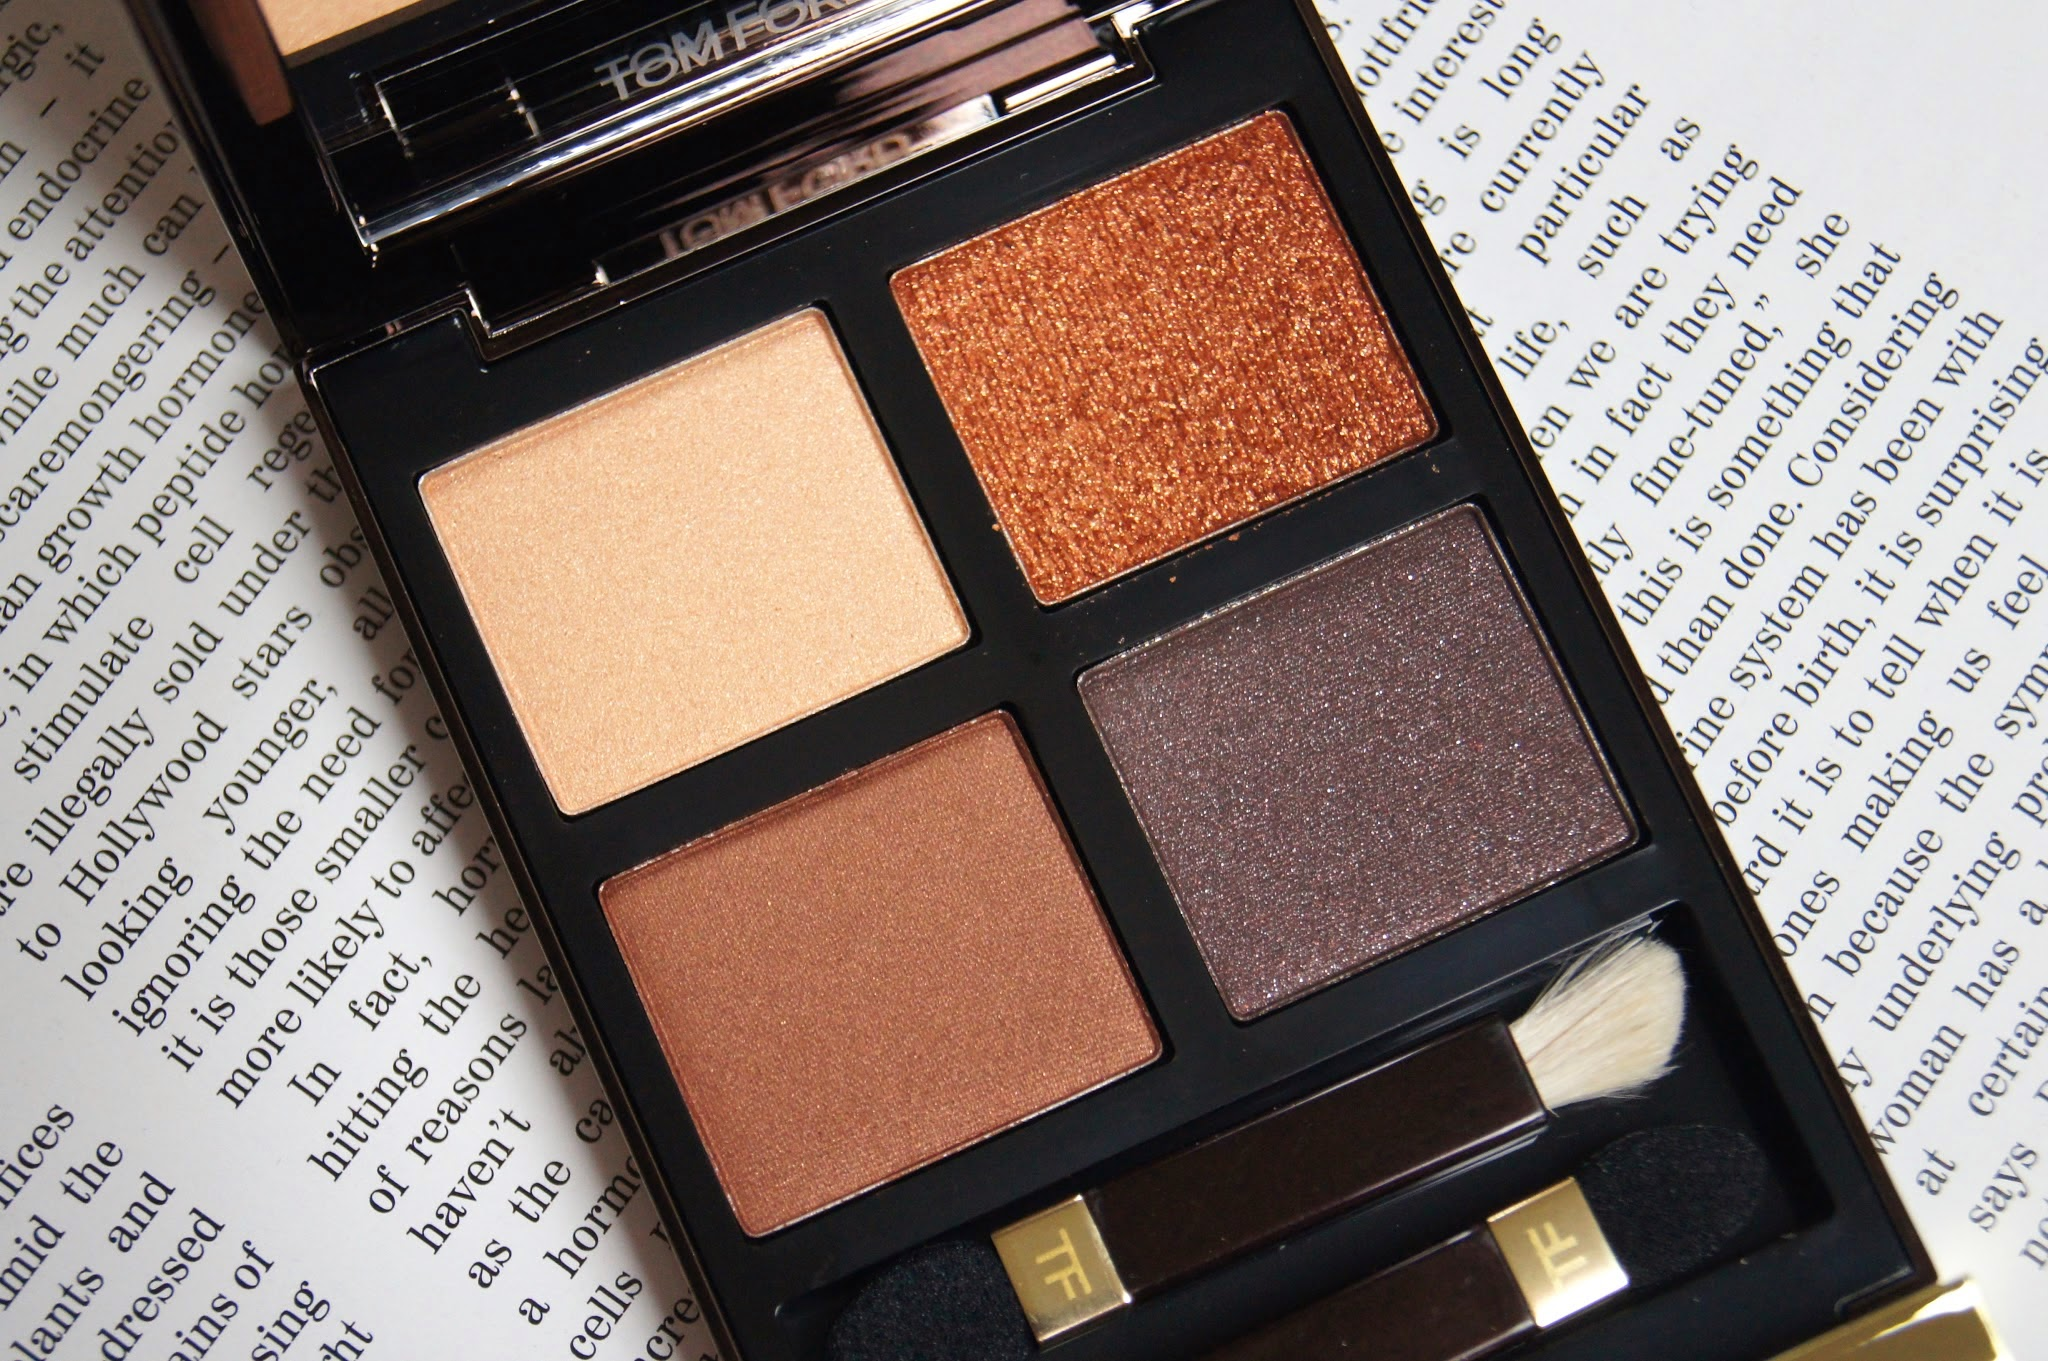 tom ford eye color quad review swatches cognac sable nude warm toned bronze golden